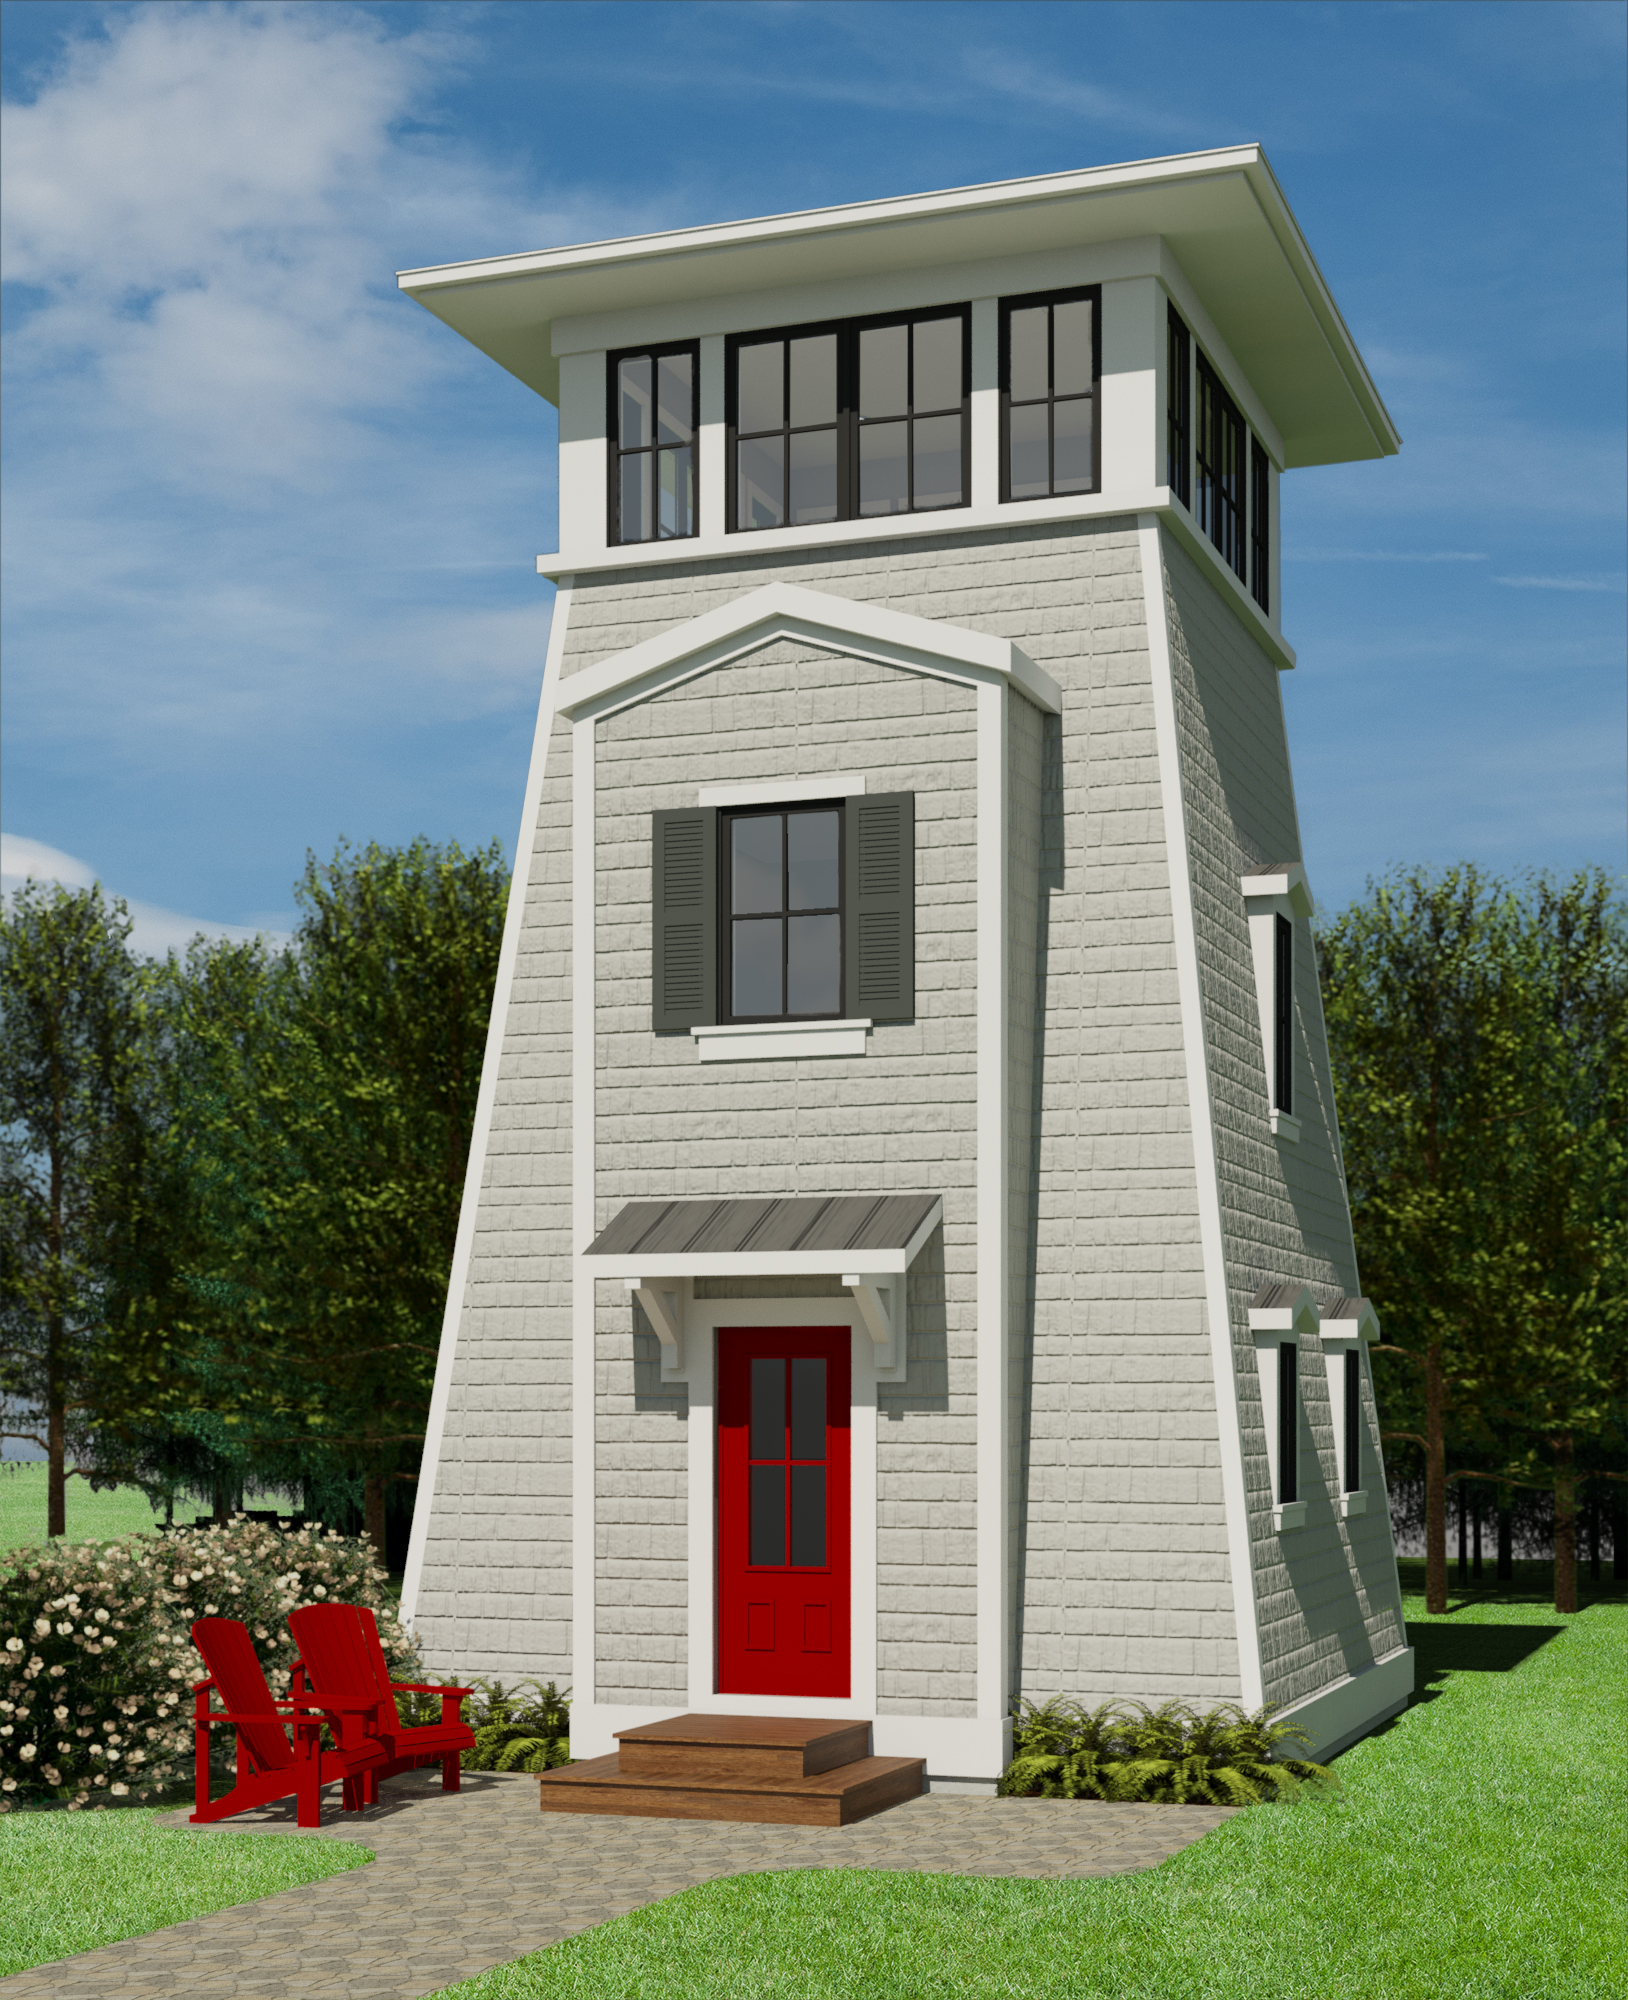 Robinson residential house plans house plans for Small residential building plan